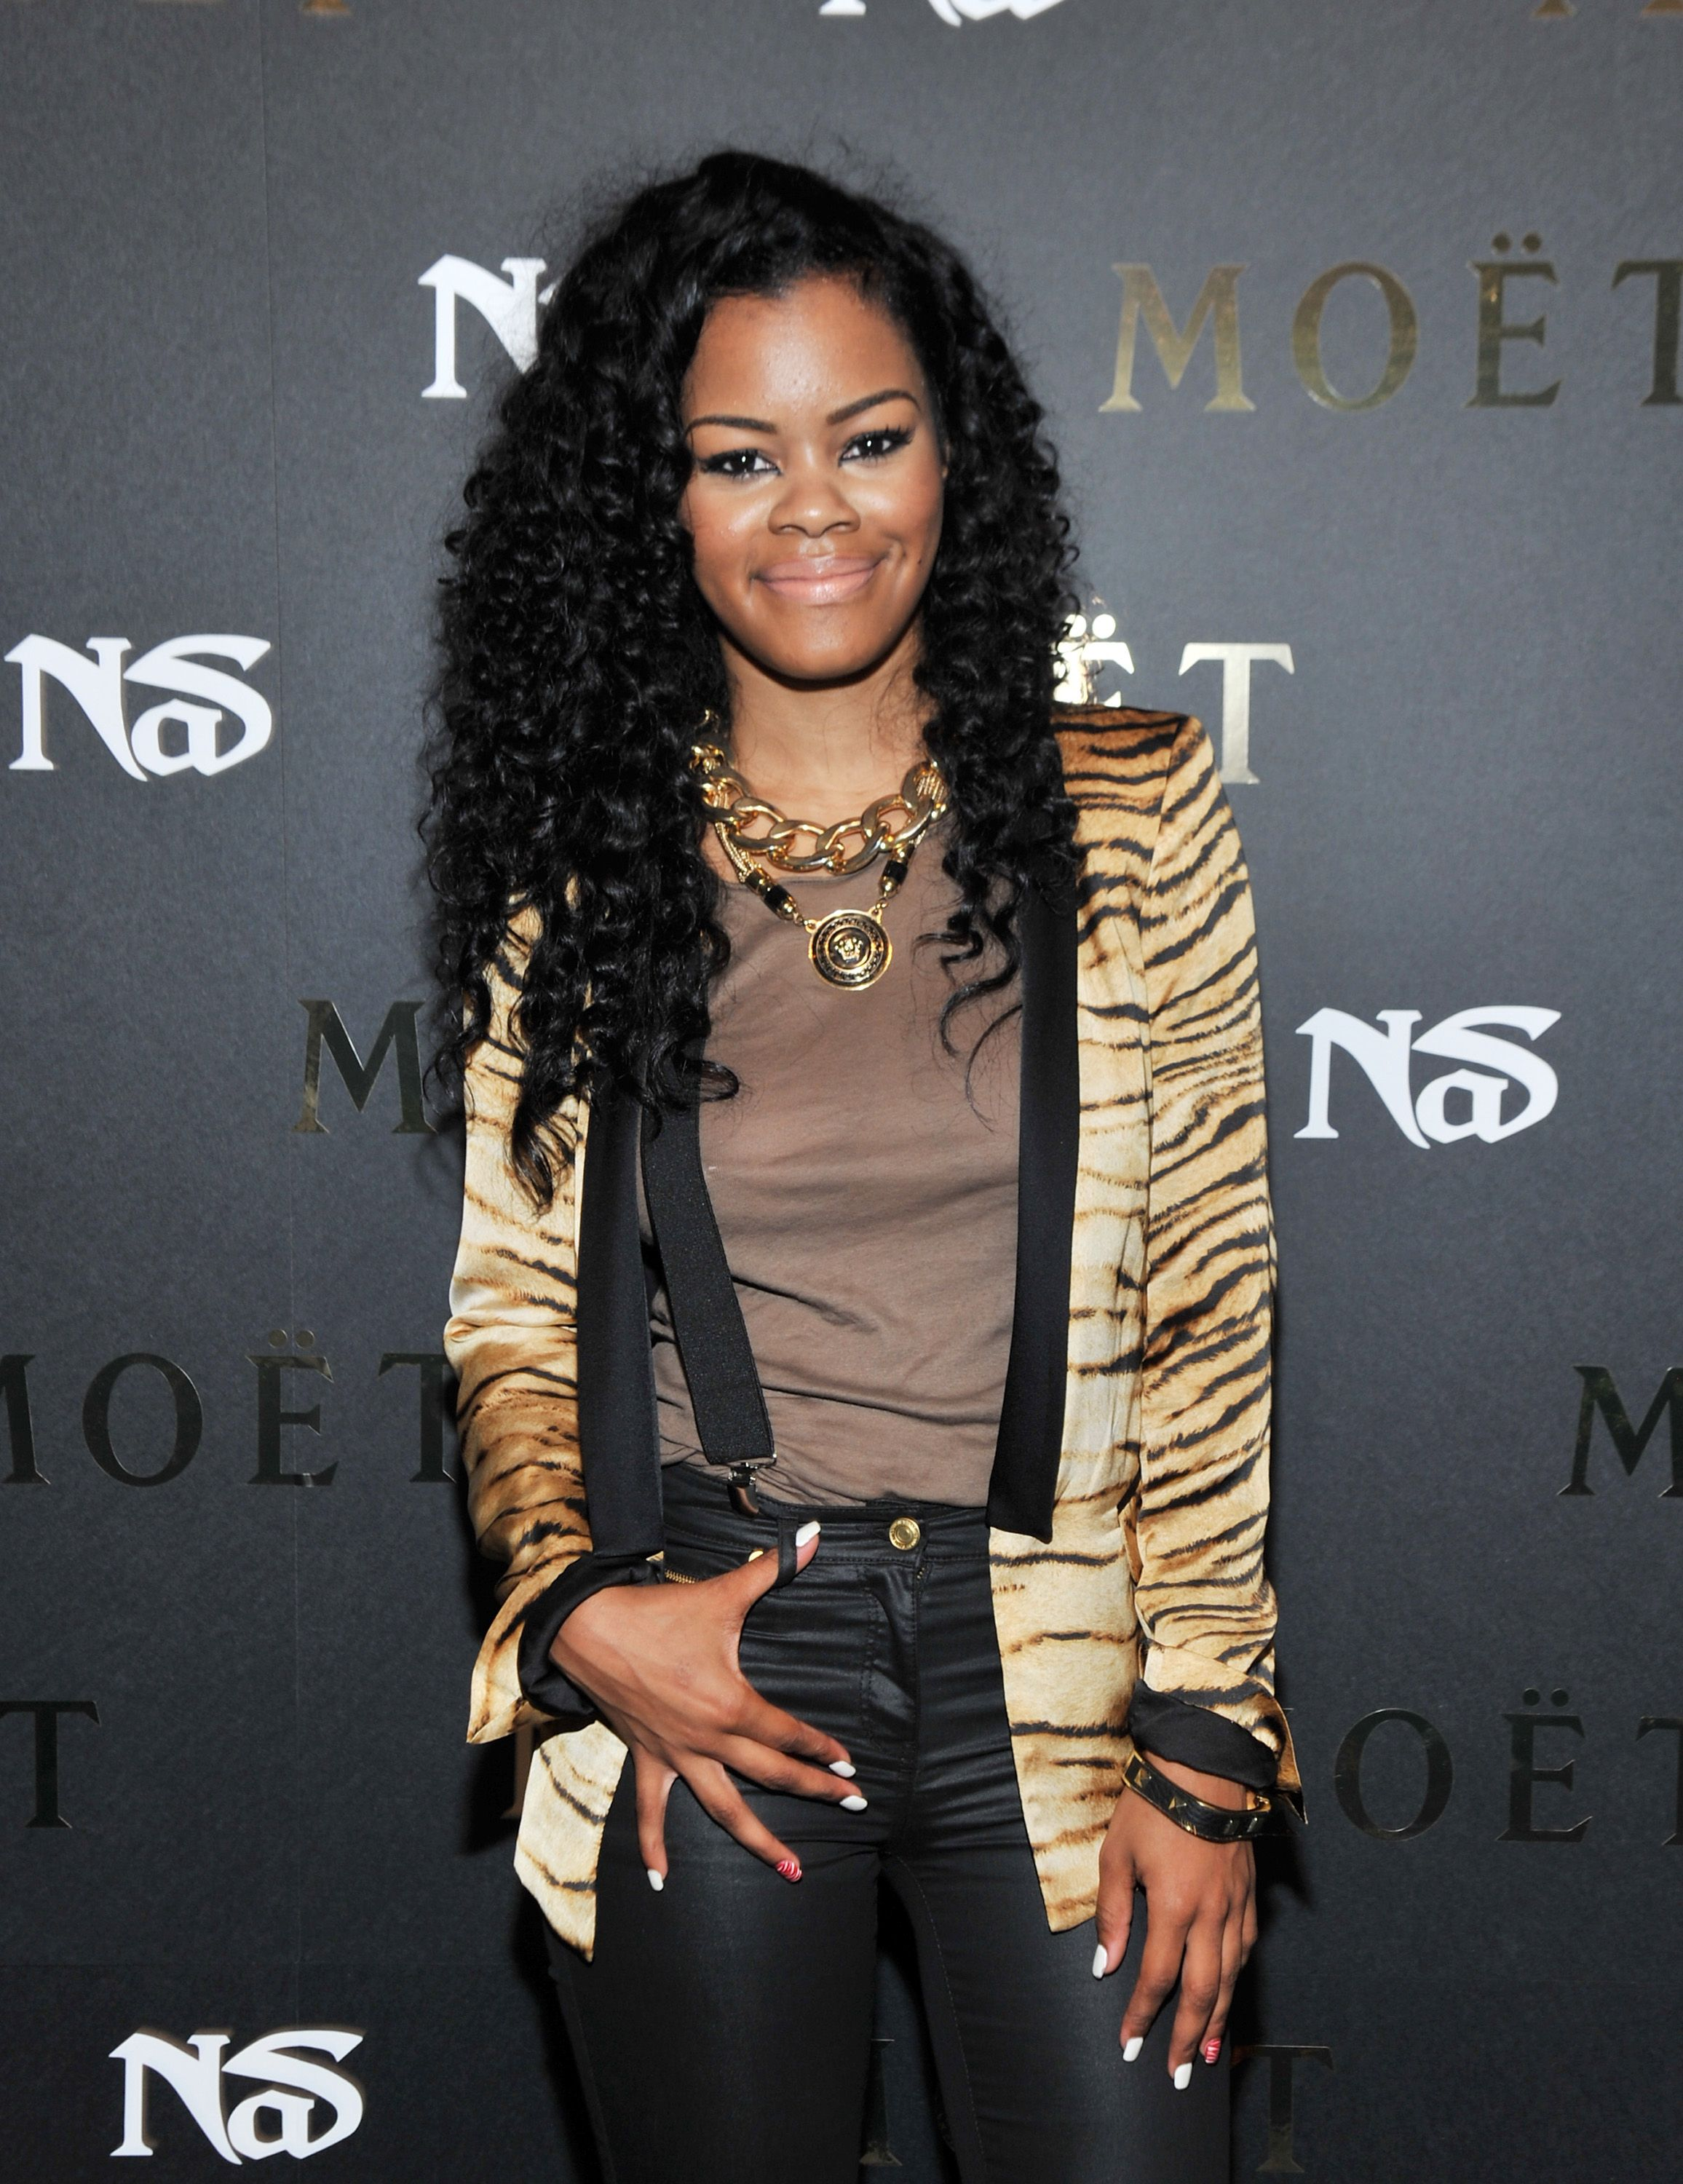 """Teyana Taylor during the """"Moet Rose Lounge Presents Nas' Life Is Good"""" at Bagatelle on July 16, 2012 in New York City. 